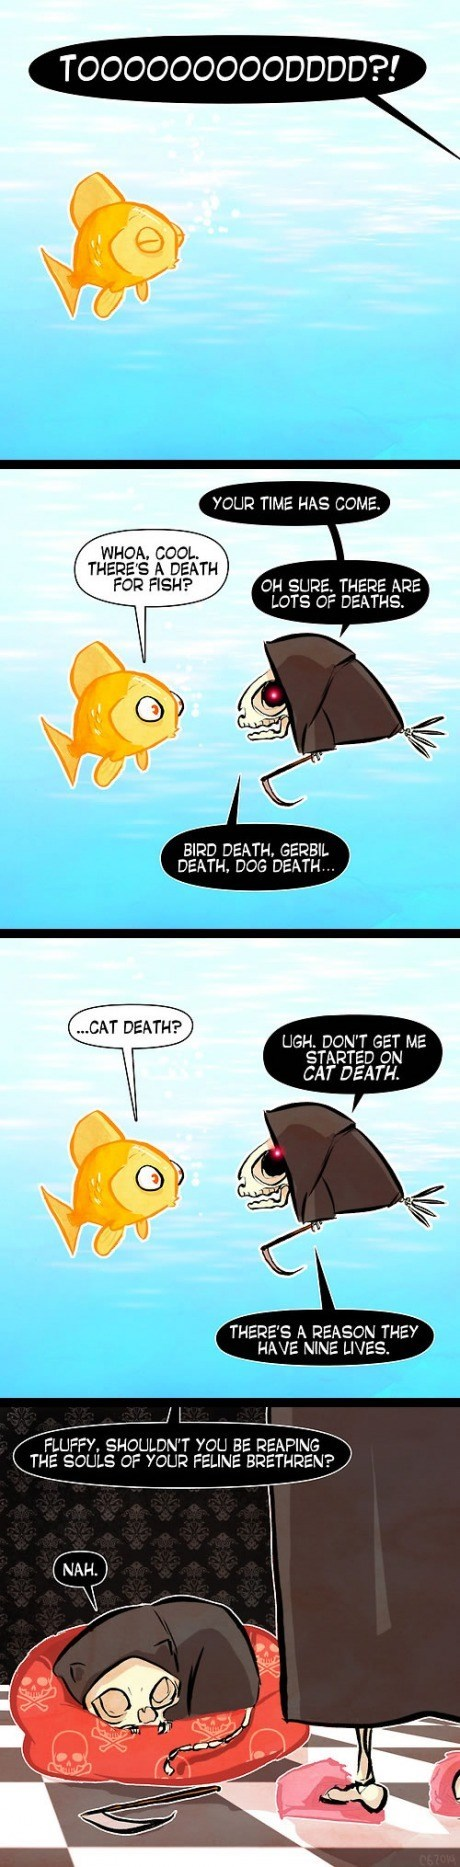 Death,sad but true,Cats,web comics